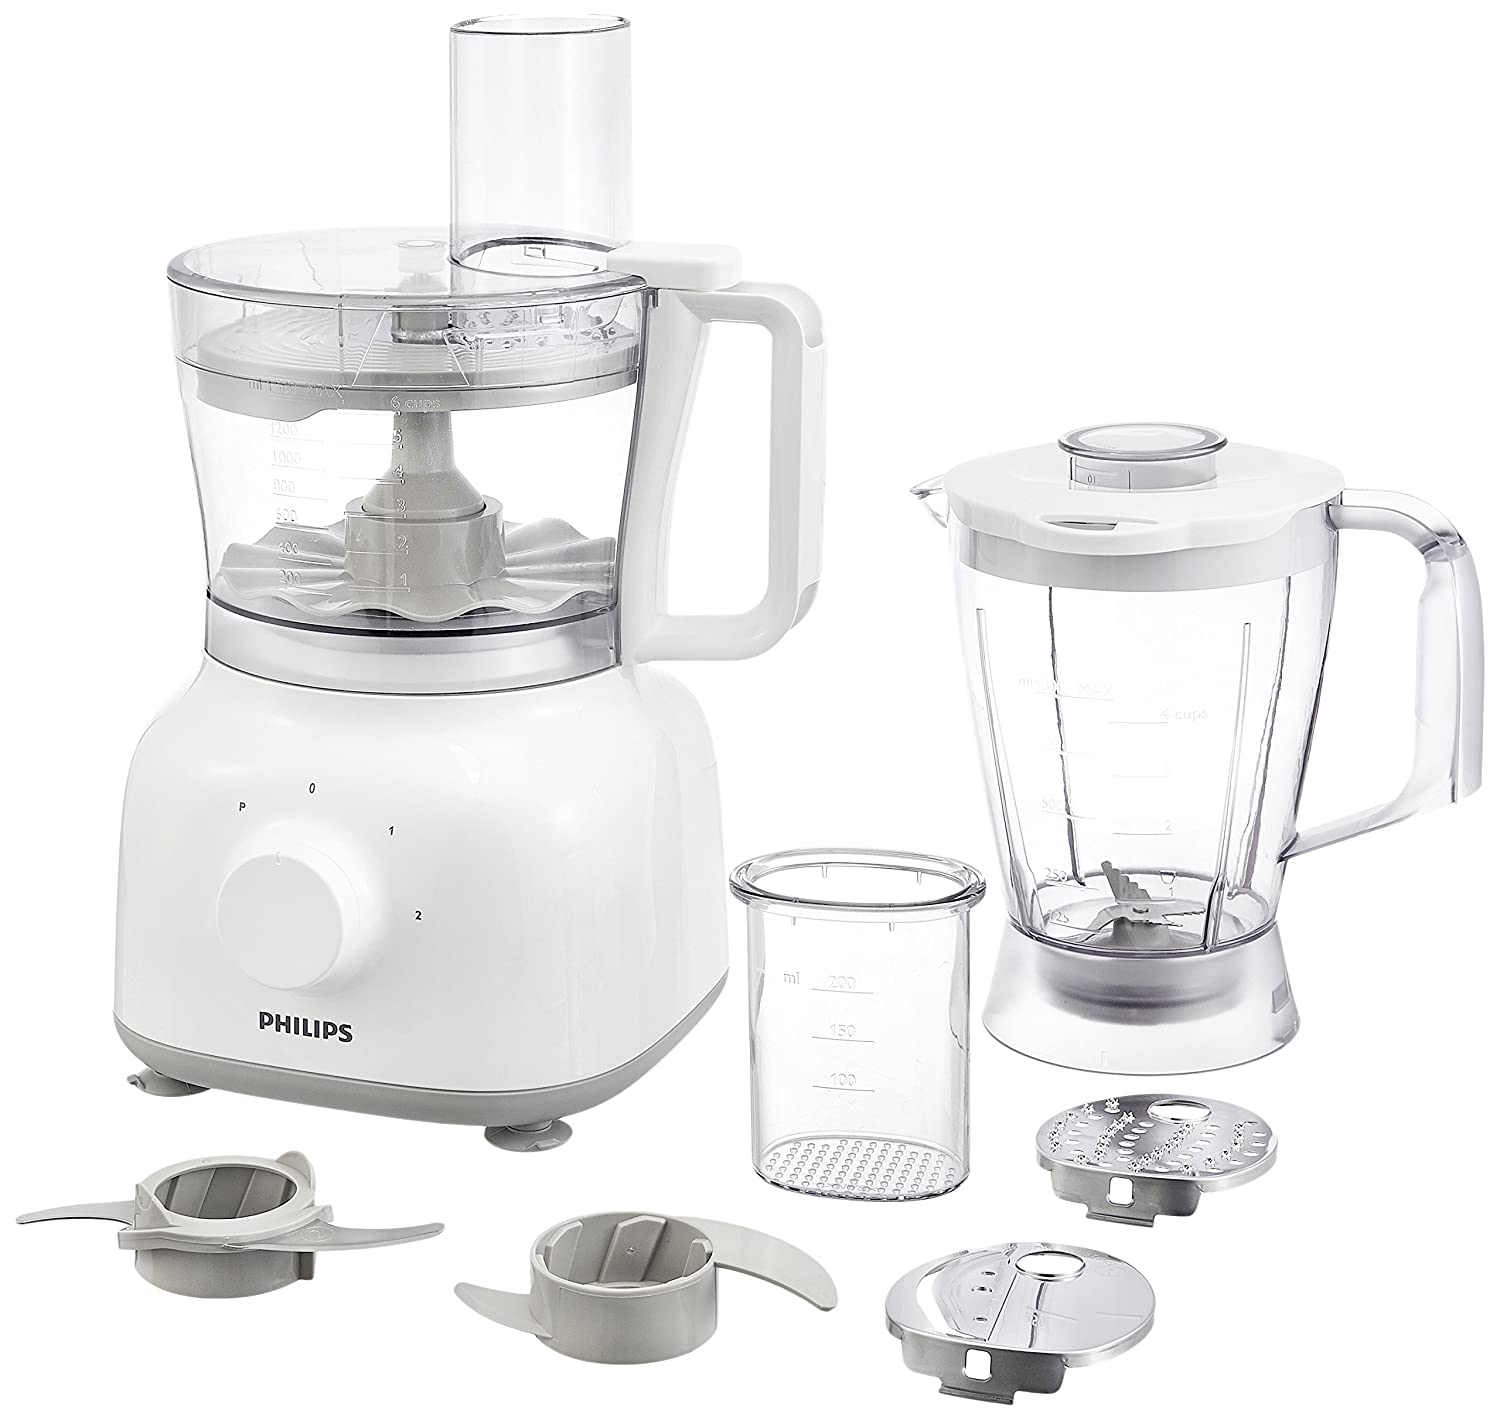 philips food processor images galleries with a bite. Black Bedroom Furniture Sets. Home Design Ideas